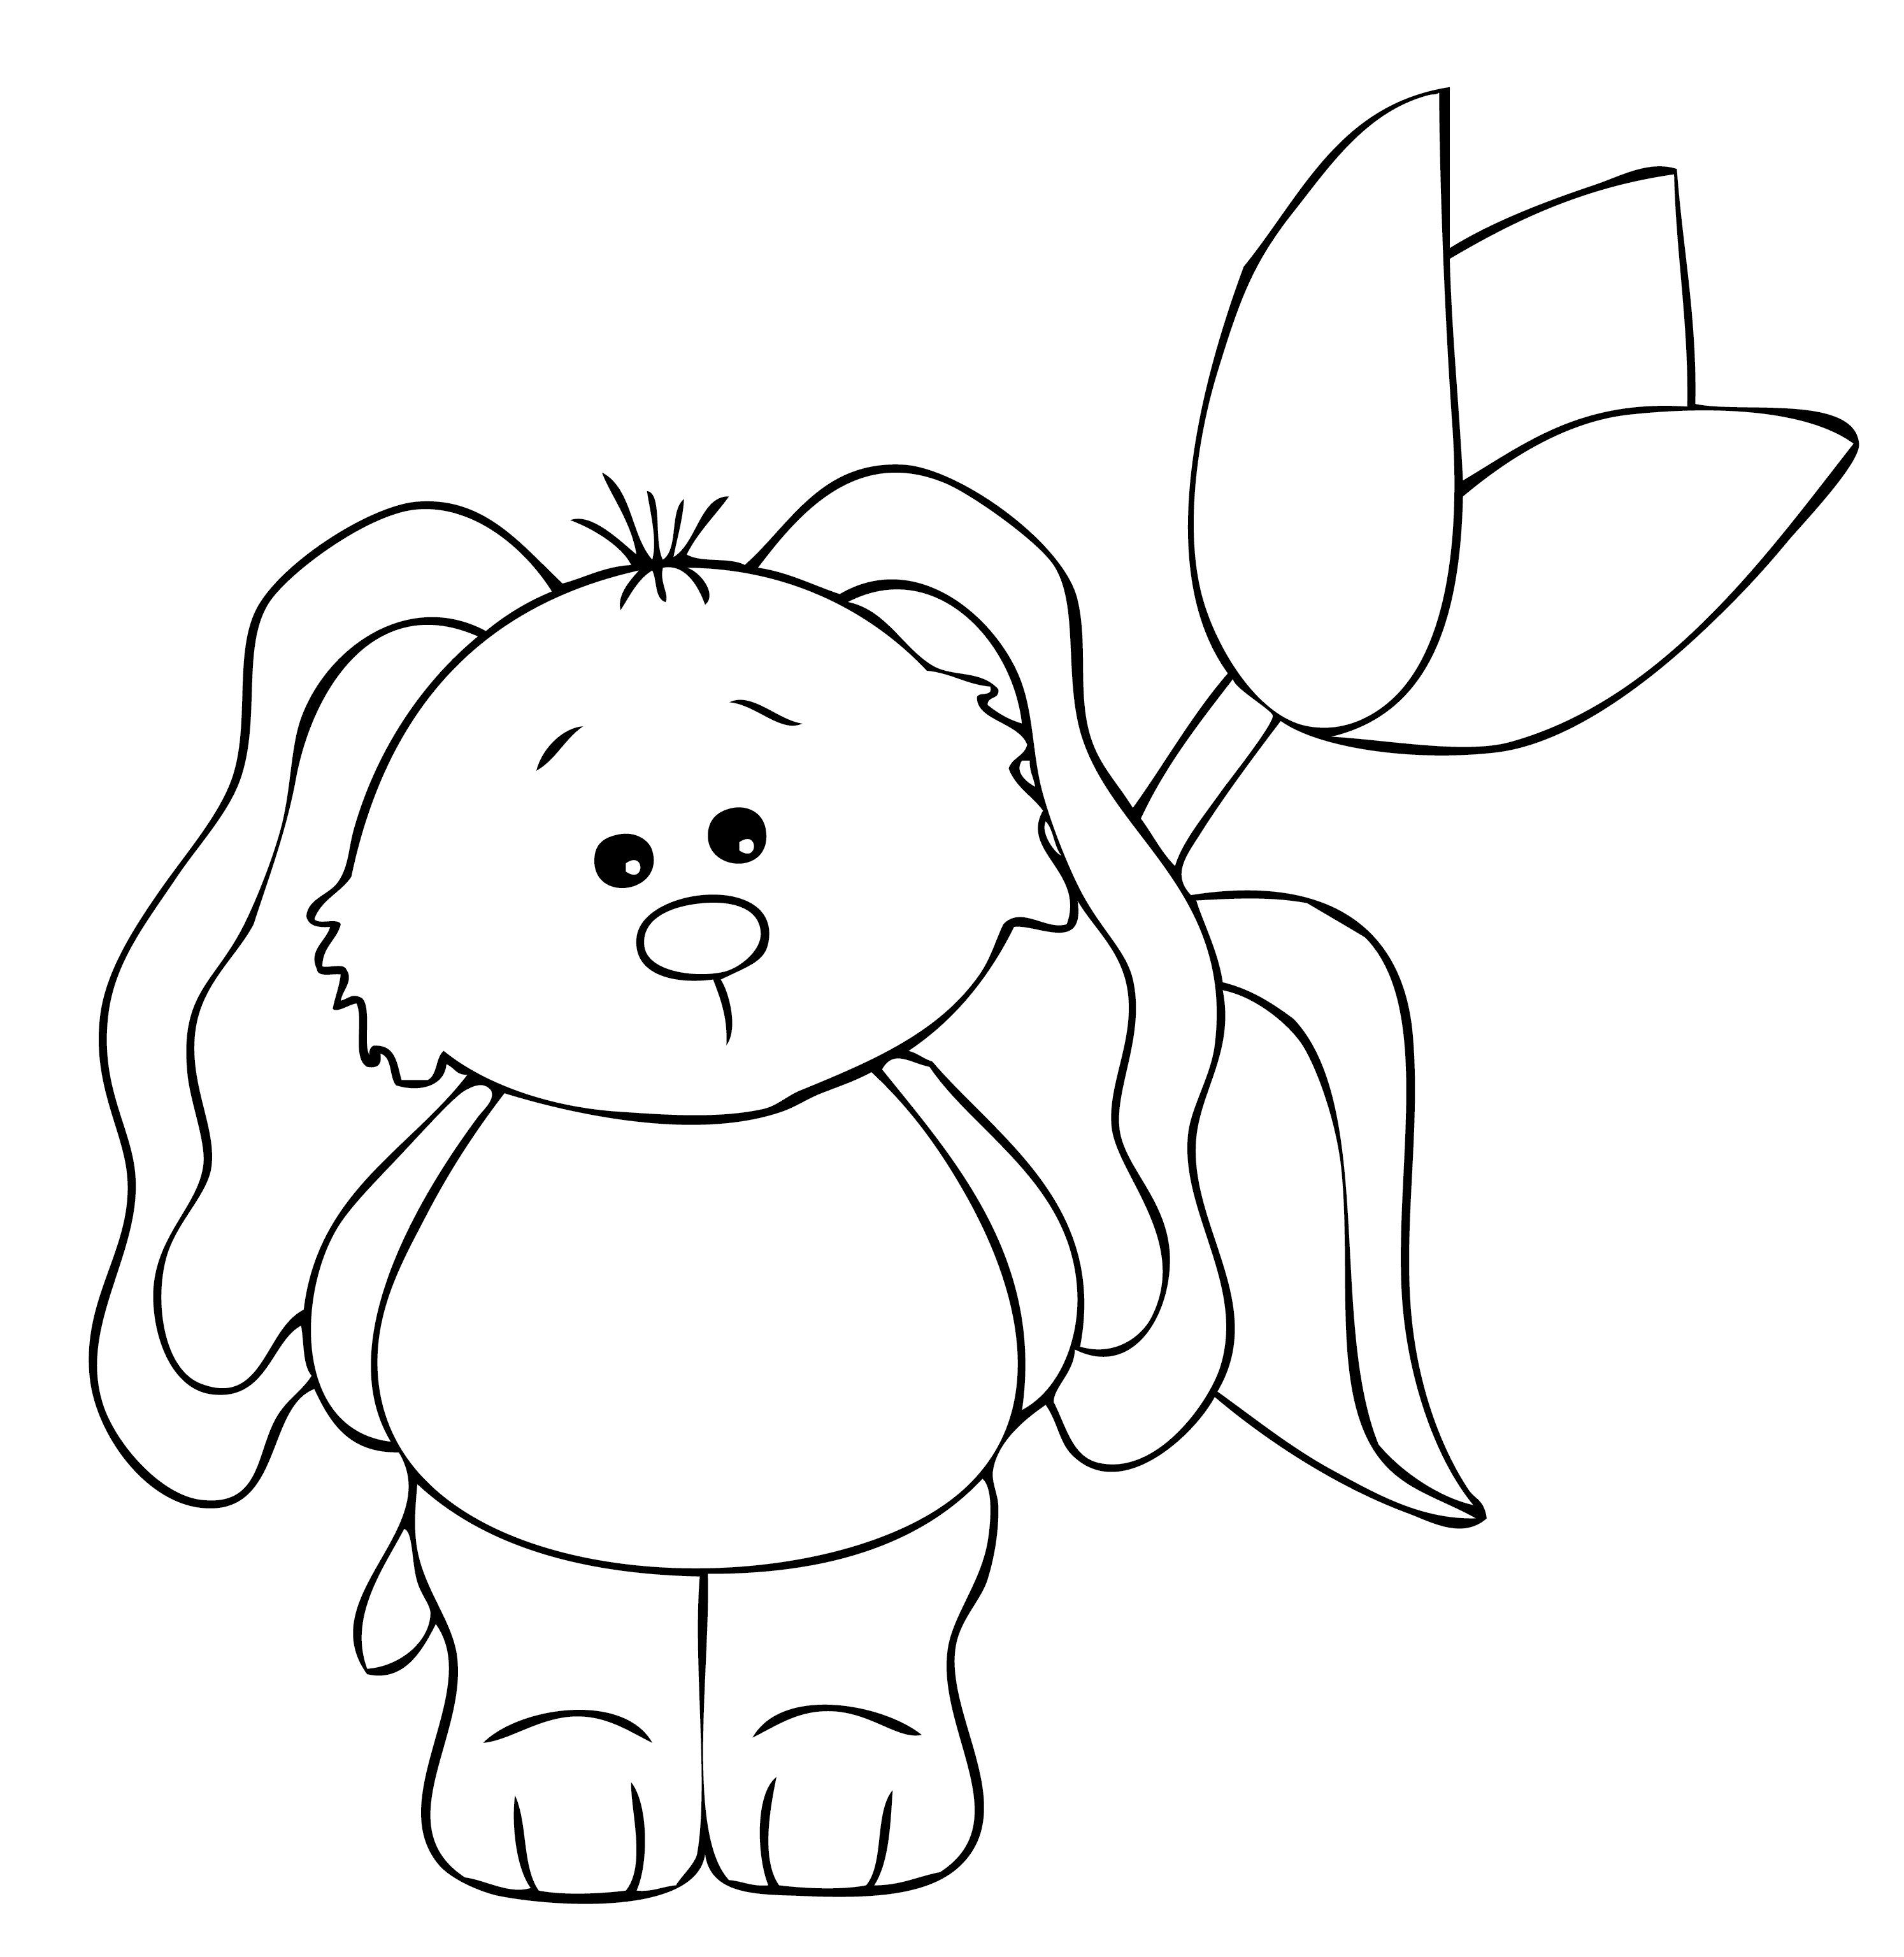 stuffed animal coloring pages stuffed animal coloring pages coloring home pages animal stuffed coloring